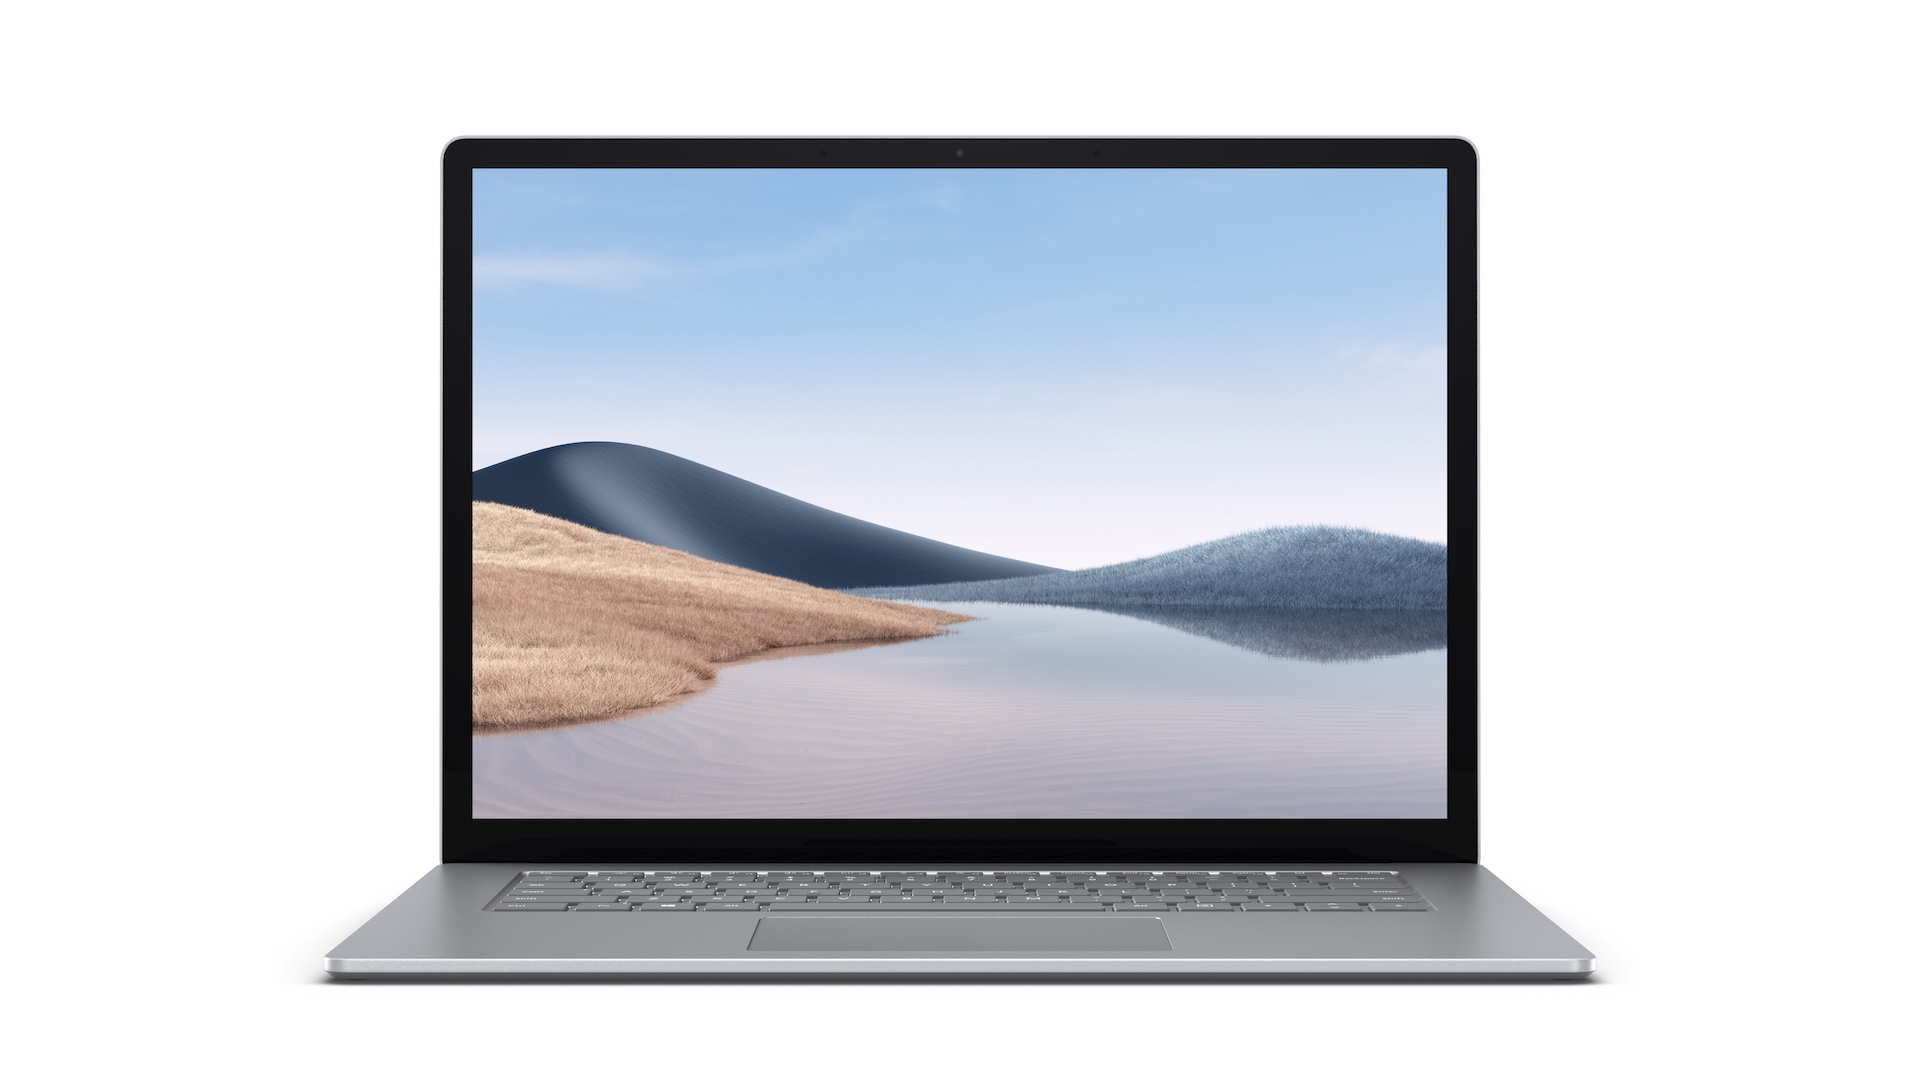 Microsoft Surface Laptop 4 - 15in / i7-1185G7 / 16GB / 256GB, Platinum; Commercial